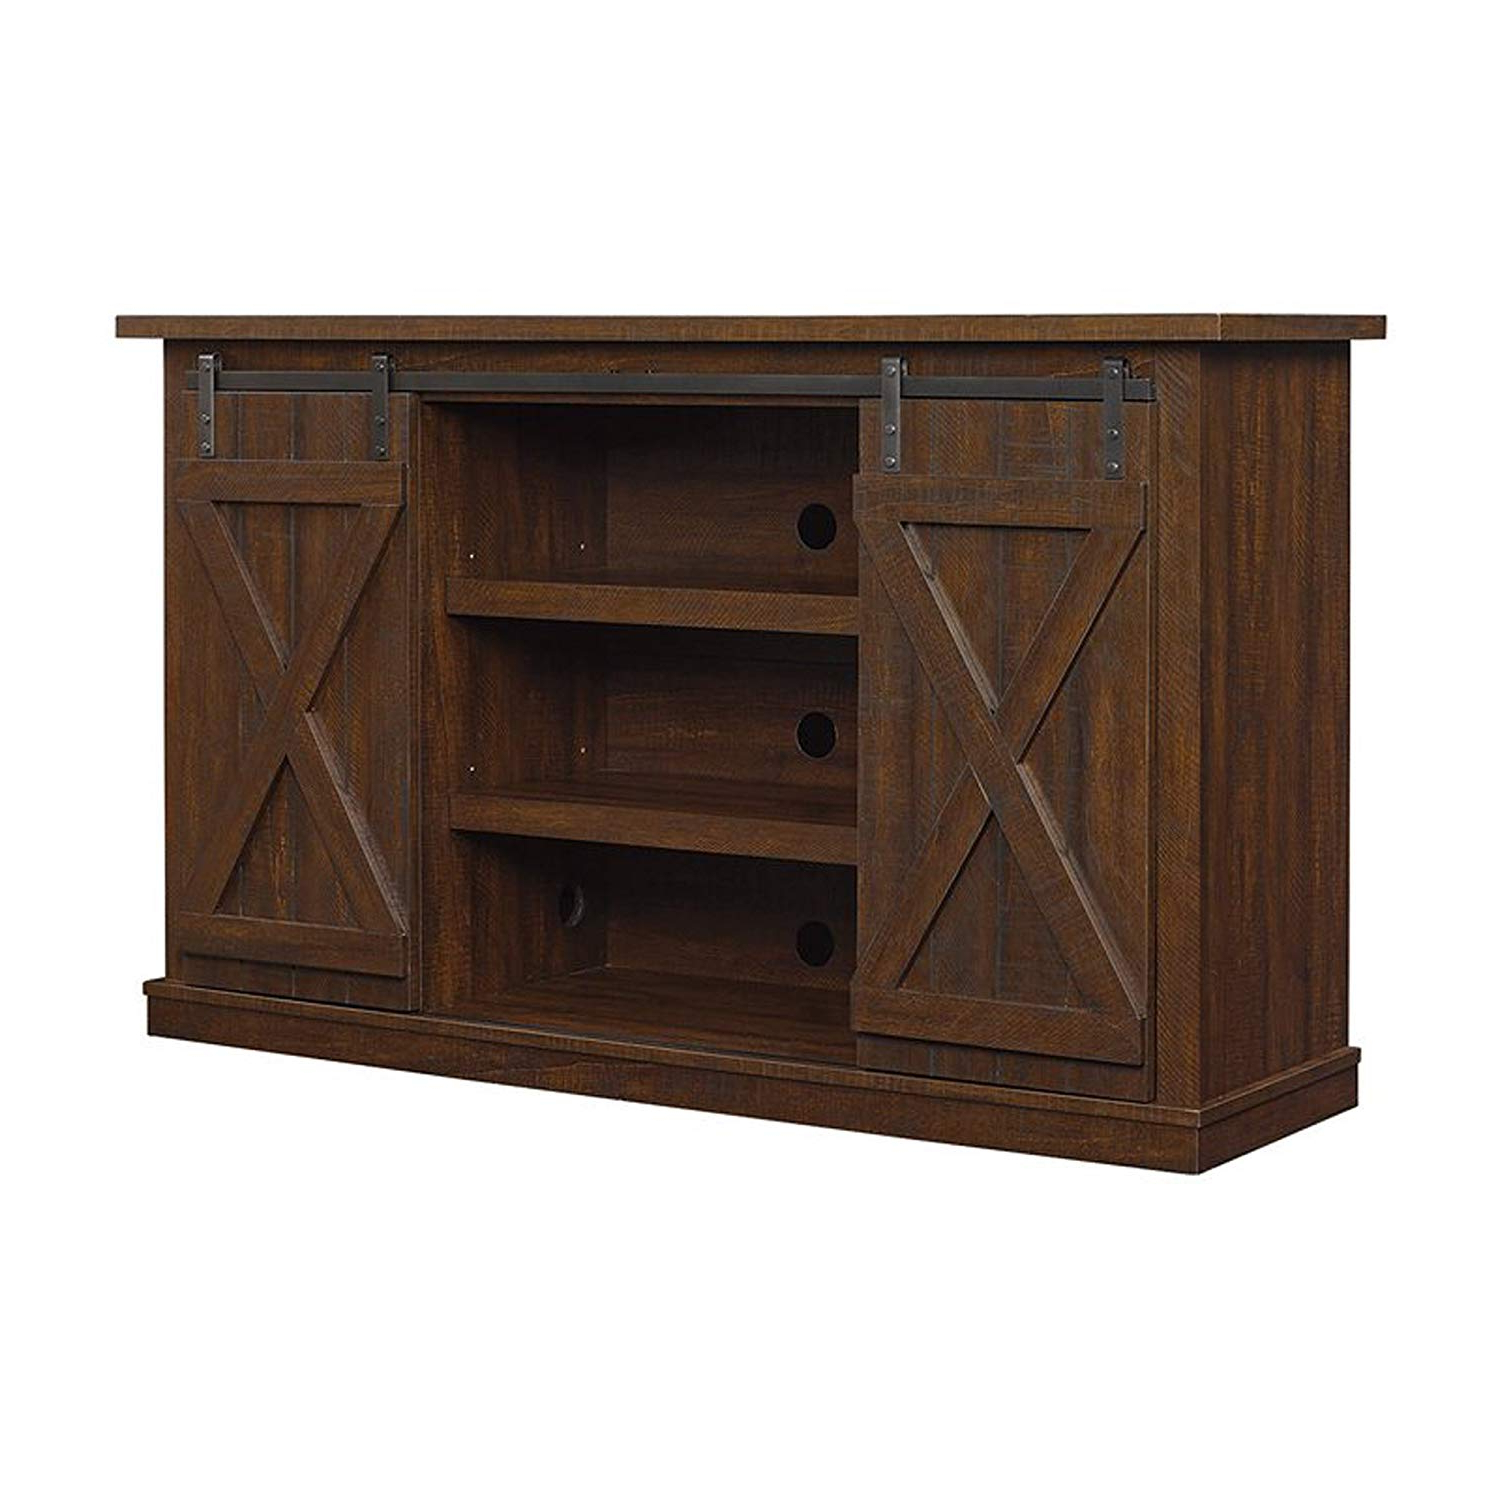 2018 Amazon: Industrial Tv Stand With Fireplace – Antique Rustic Look In Raven Grey Tv Stands (View 12 of 20)